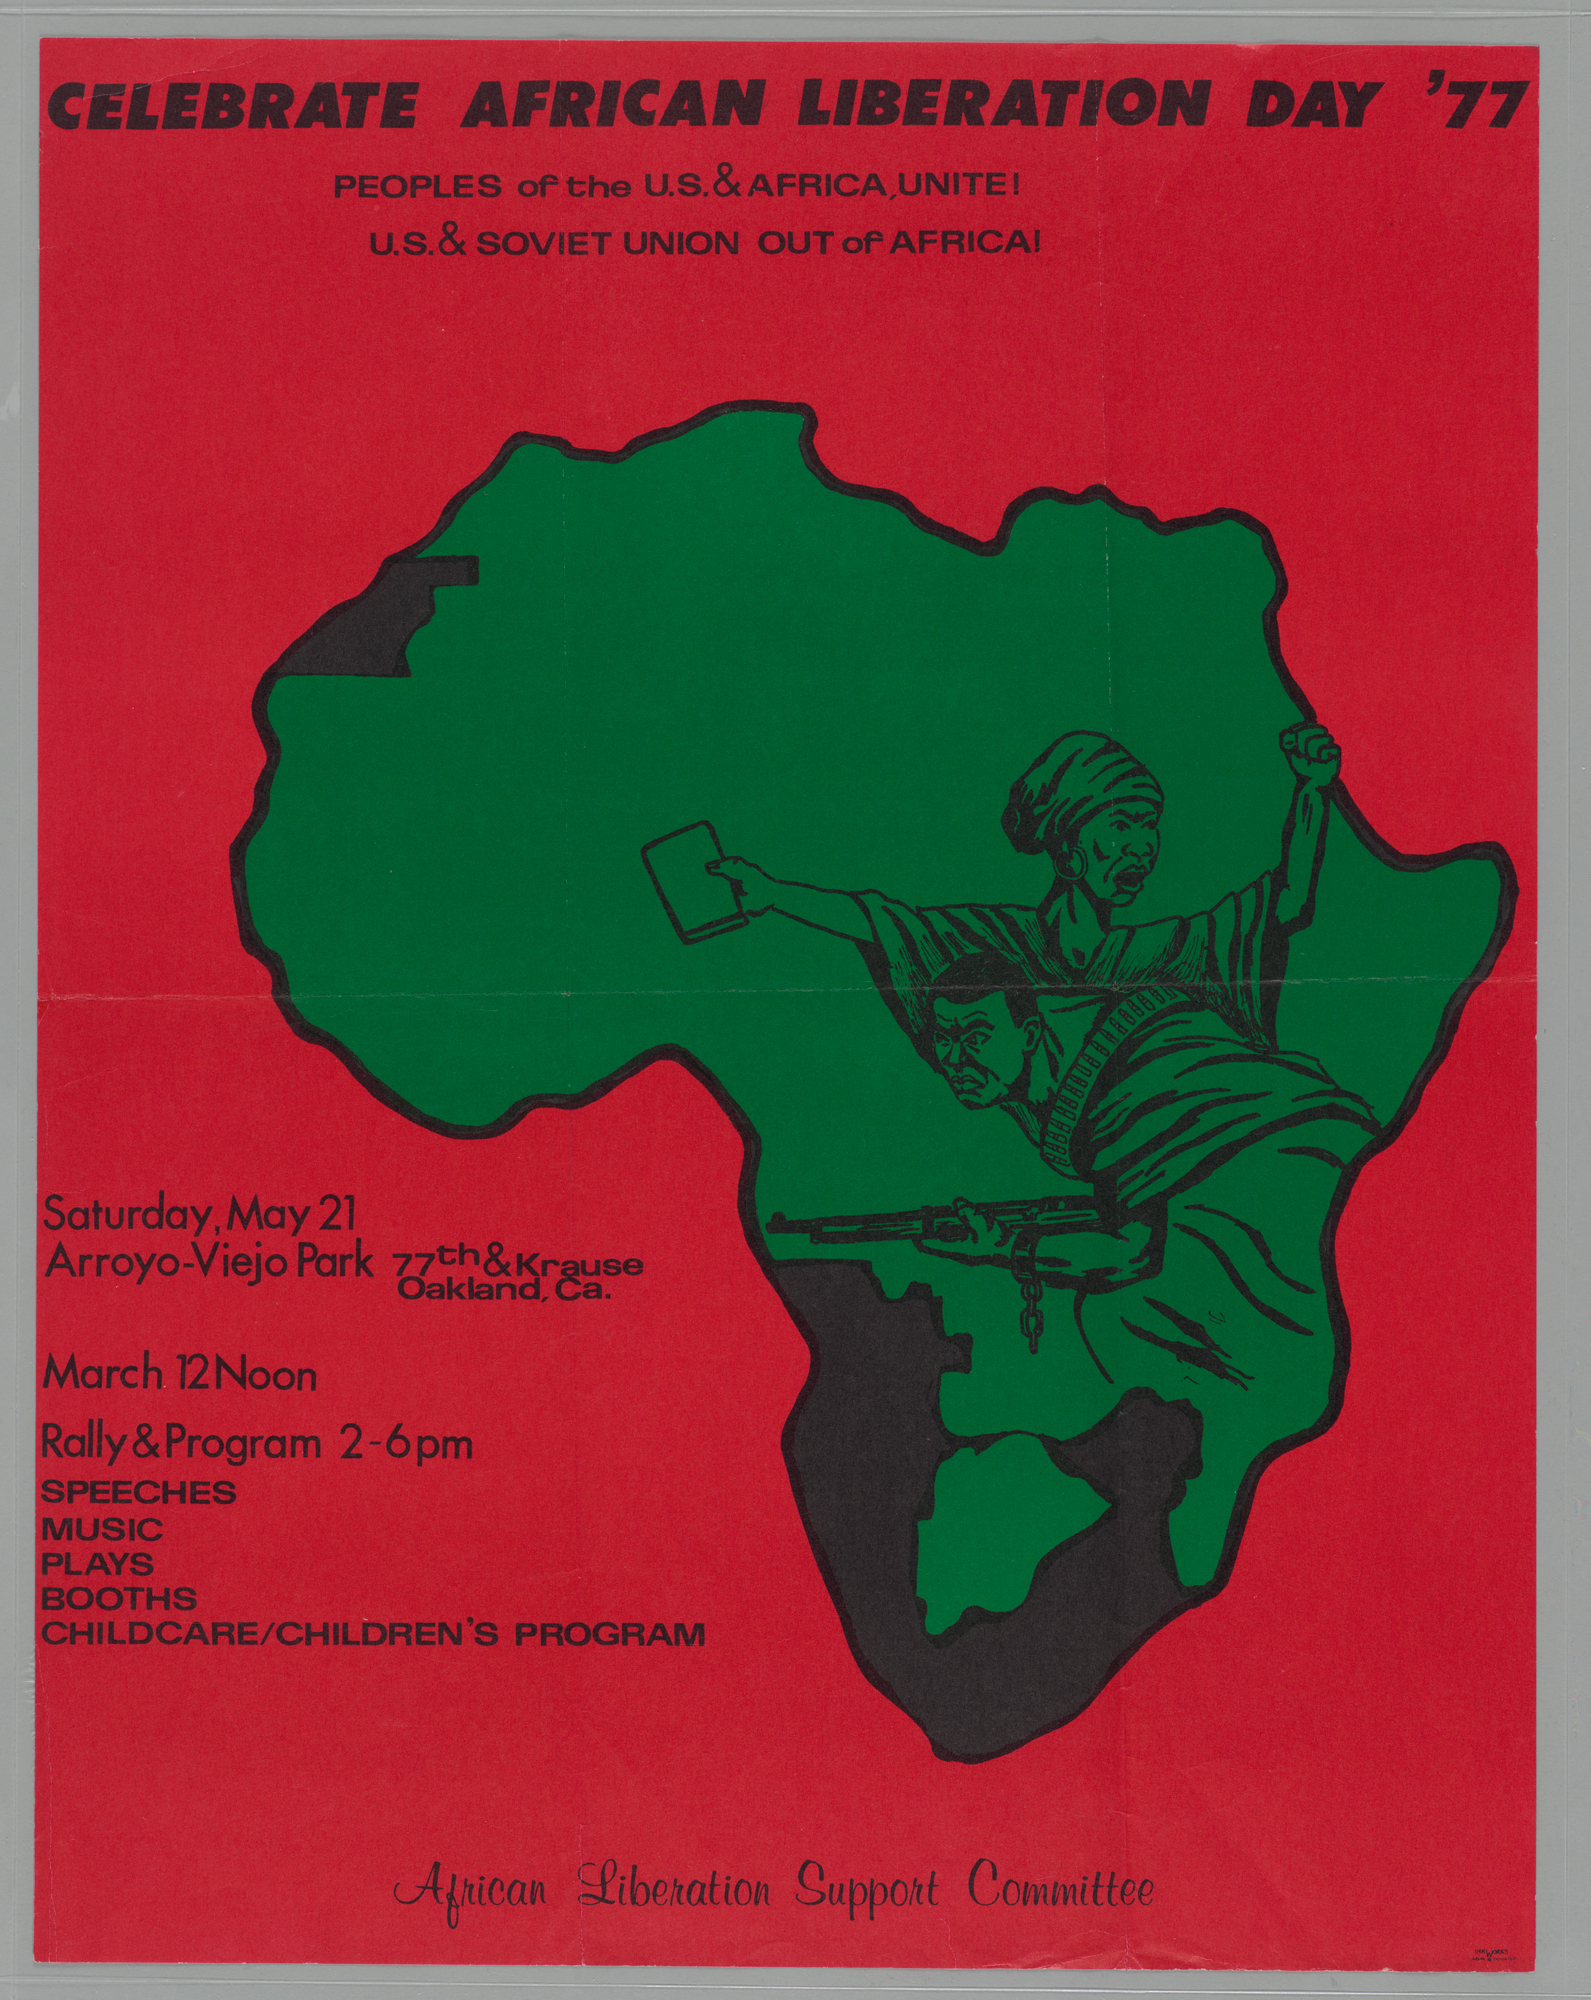 Celebrate African Liberation Day '77